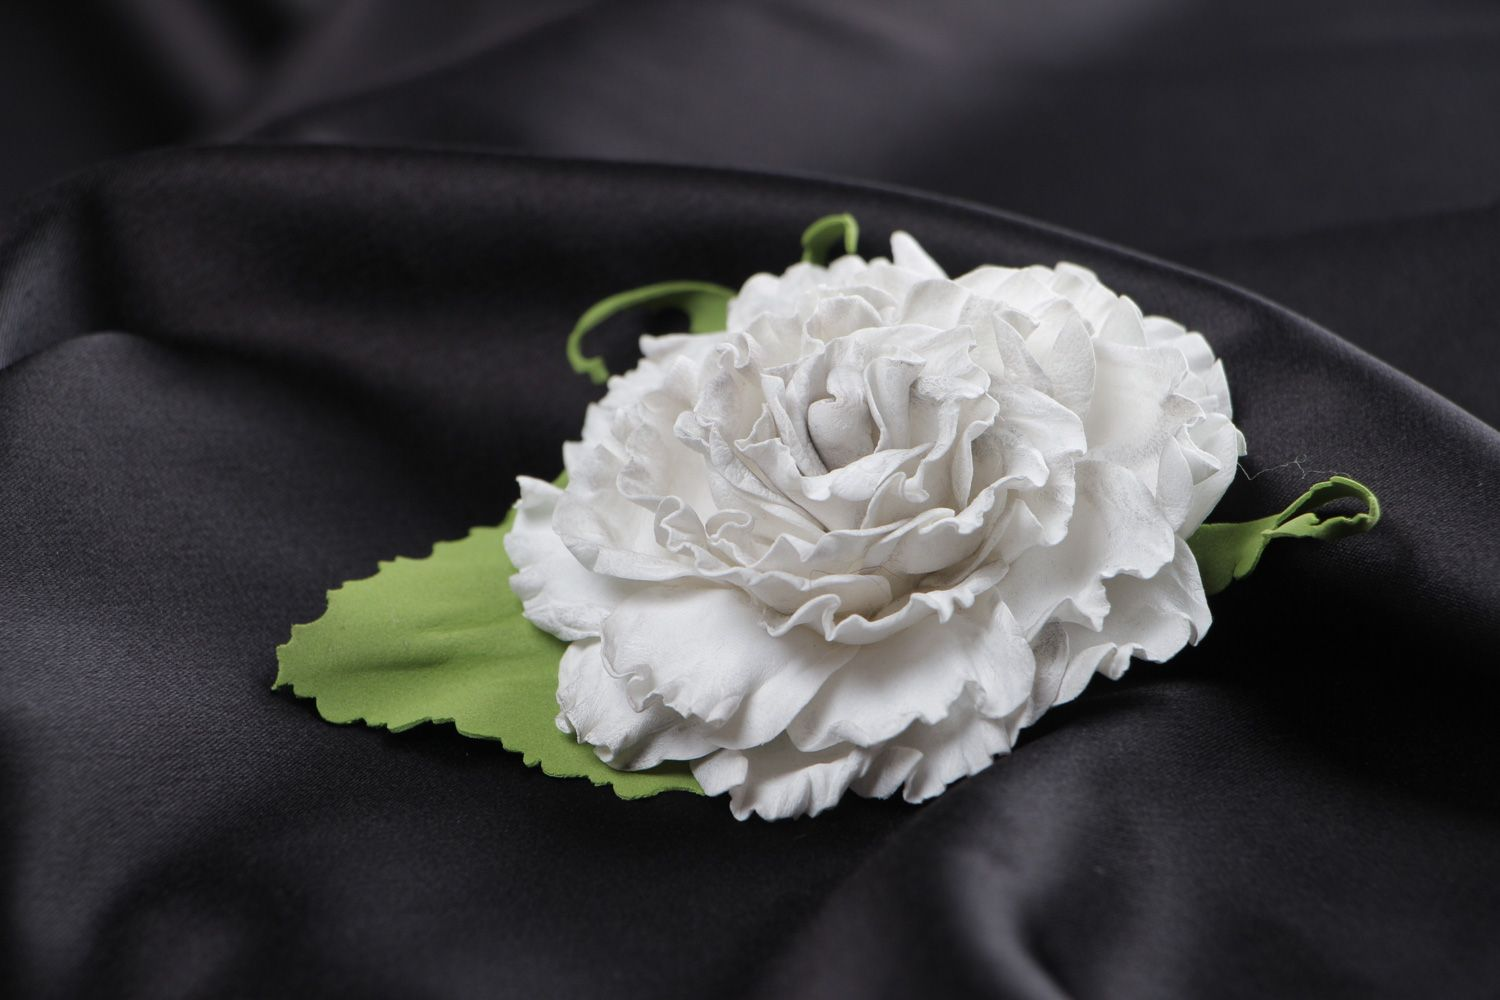 Madeheart beautiful handmade hair clip brooch with volume white flower brooches beautiful handmade hair clip brooch with volume white foam flower for women madeheart mightylinksfo